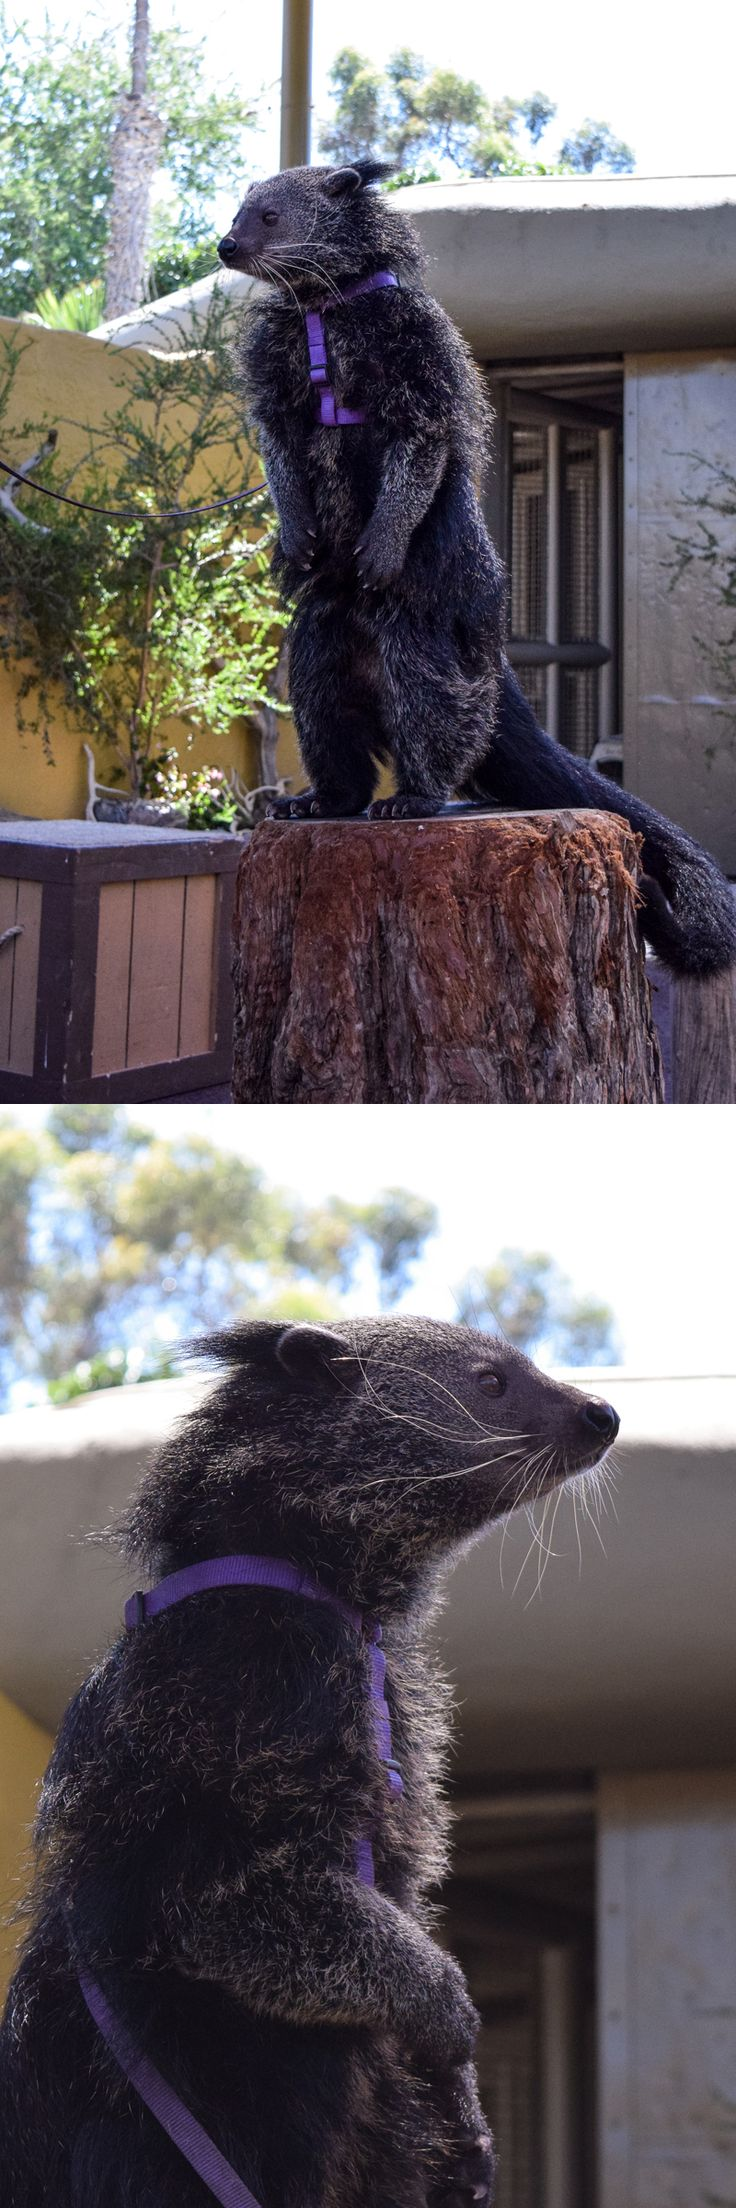 14 best Bearcats Binturong images on Pinterest Animals Animal